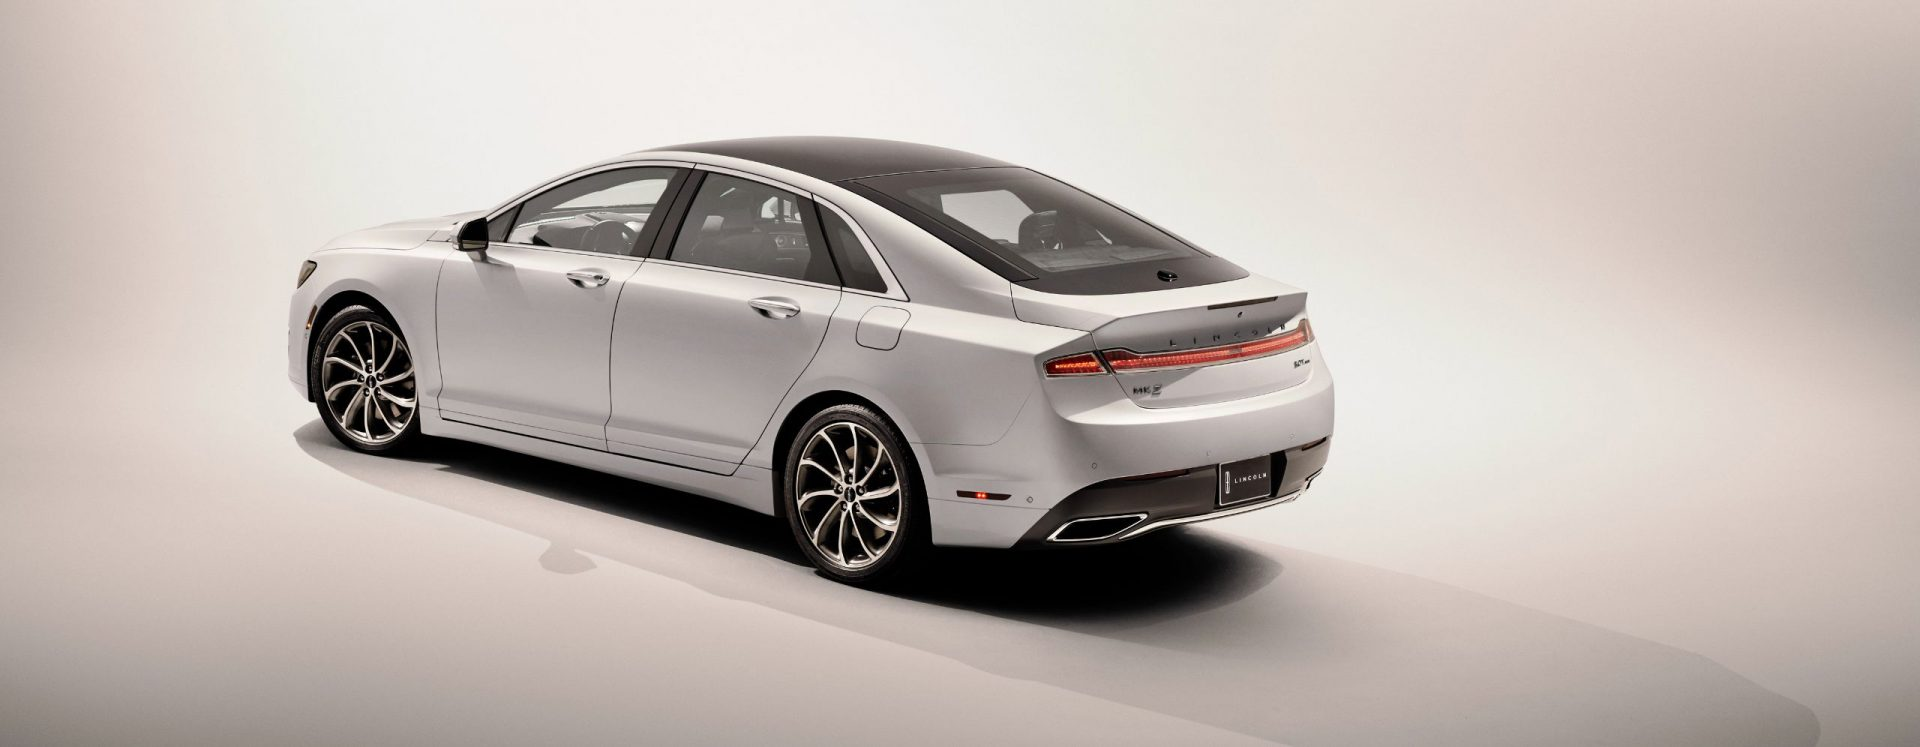 lincoln mkz 7